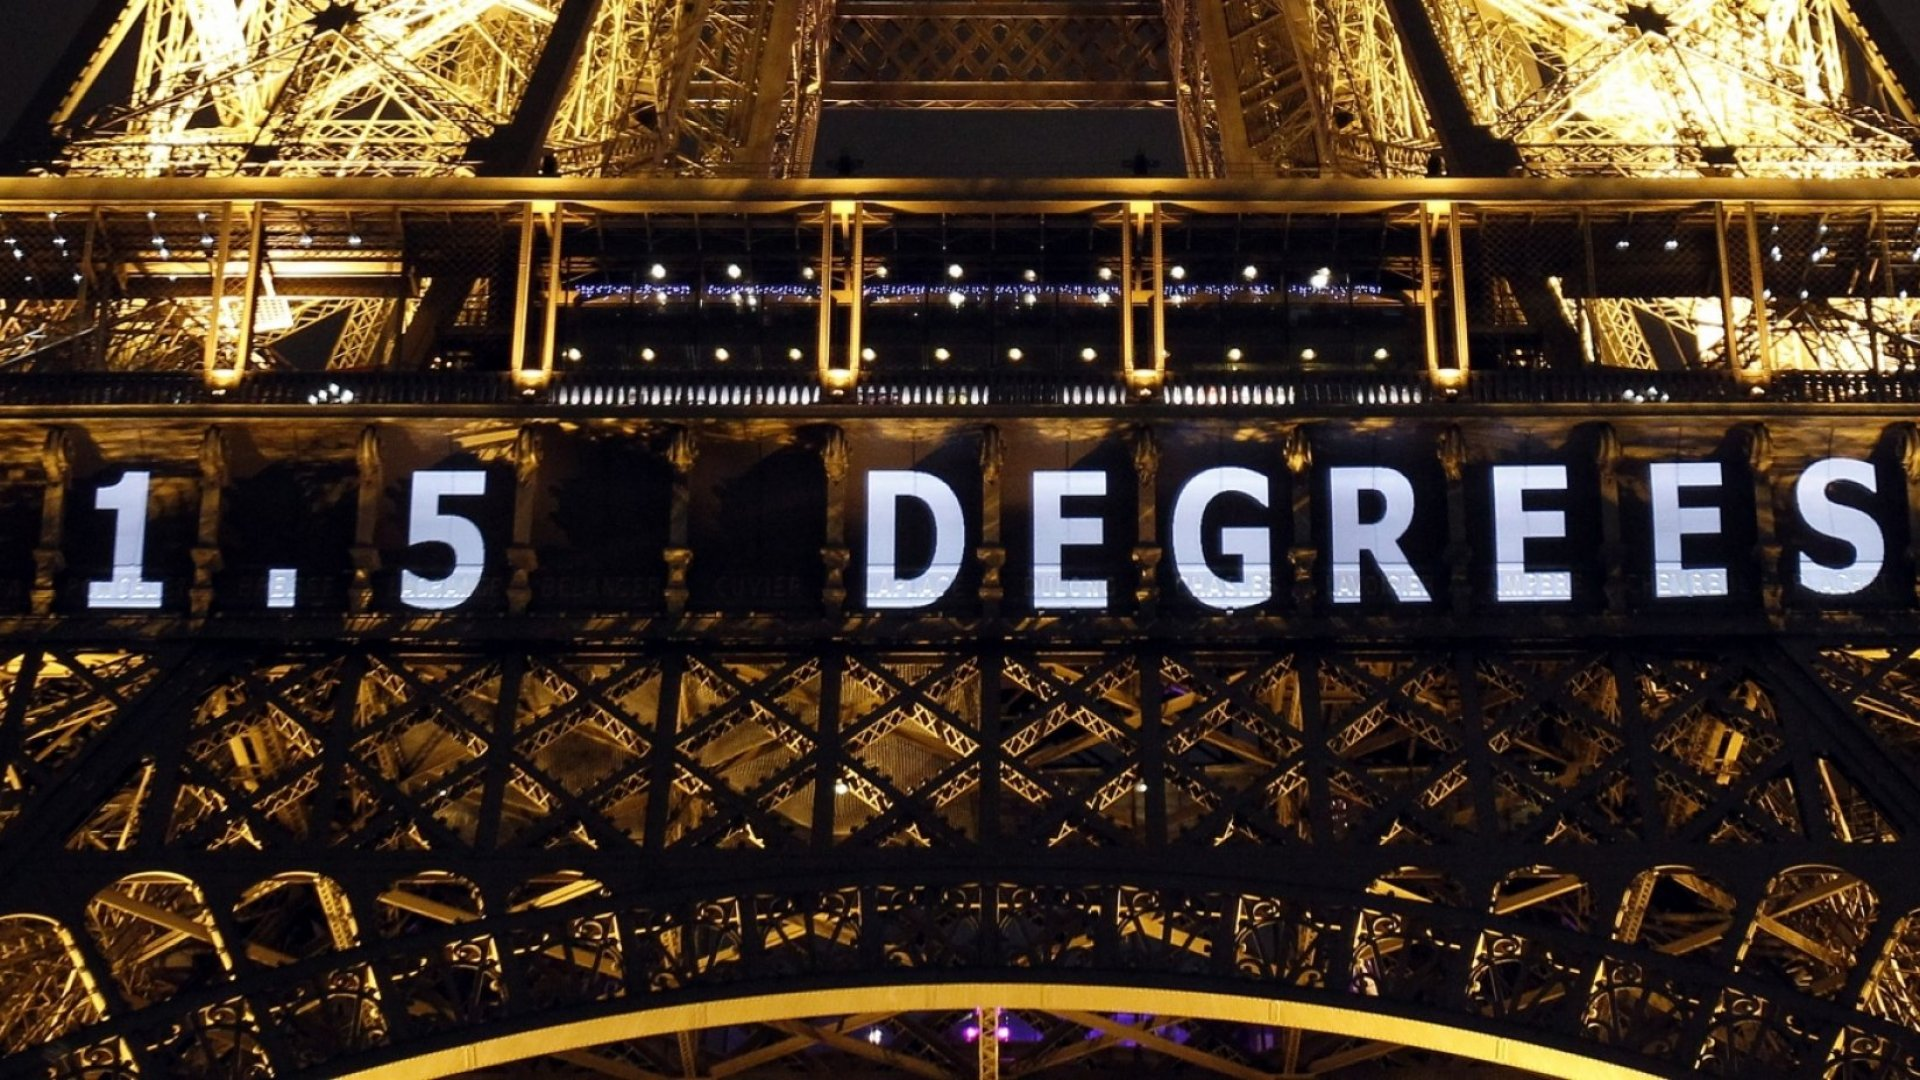 The slogan '1.5 Degrees' is projected on the Eiffel Tower as part of the World Climate Change Conference 2015 (COP21) on December 11, 2015 in Paris, France.